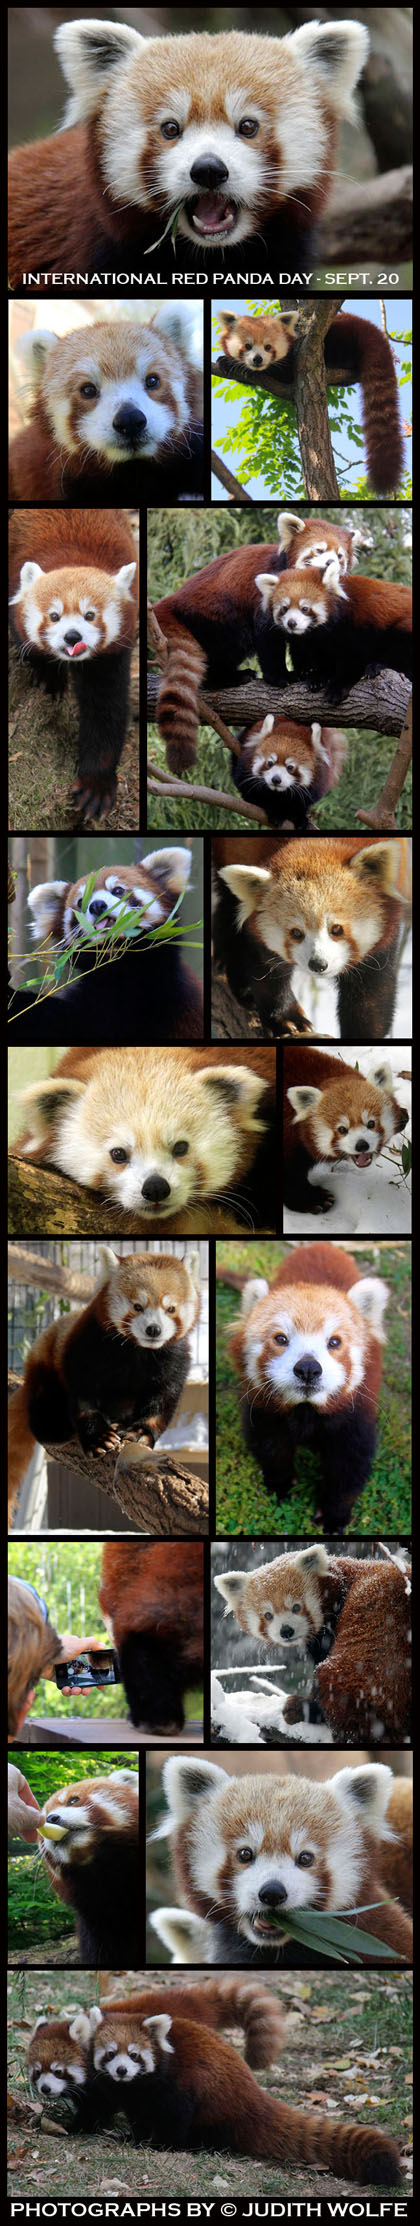 REDPANDADAY